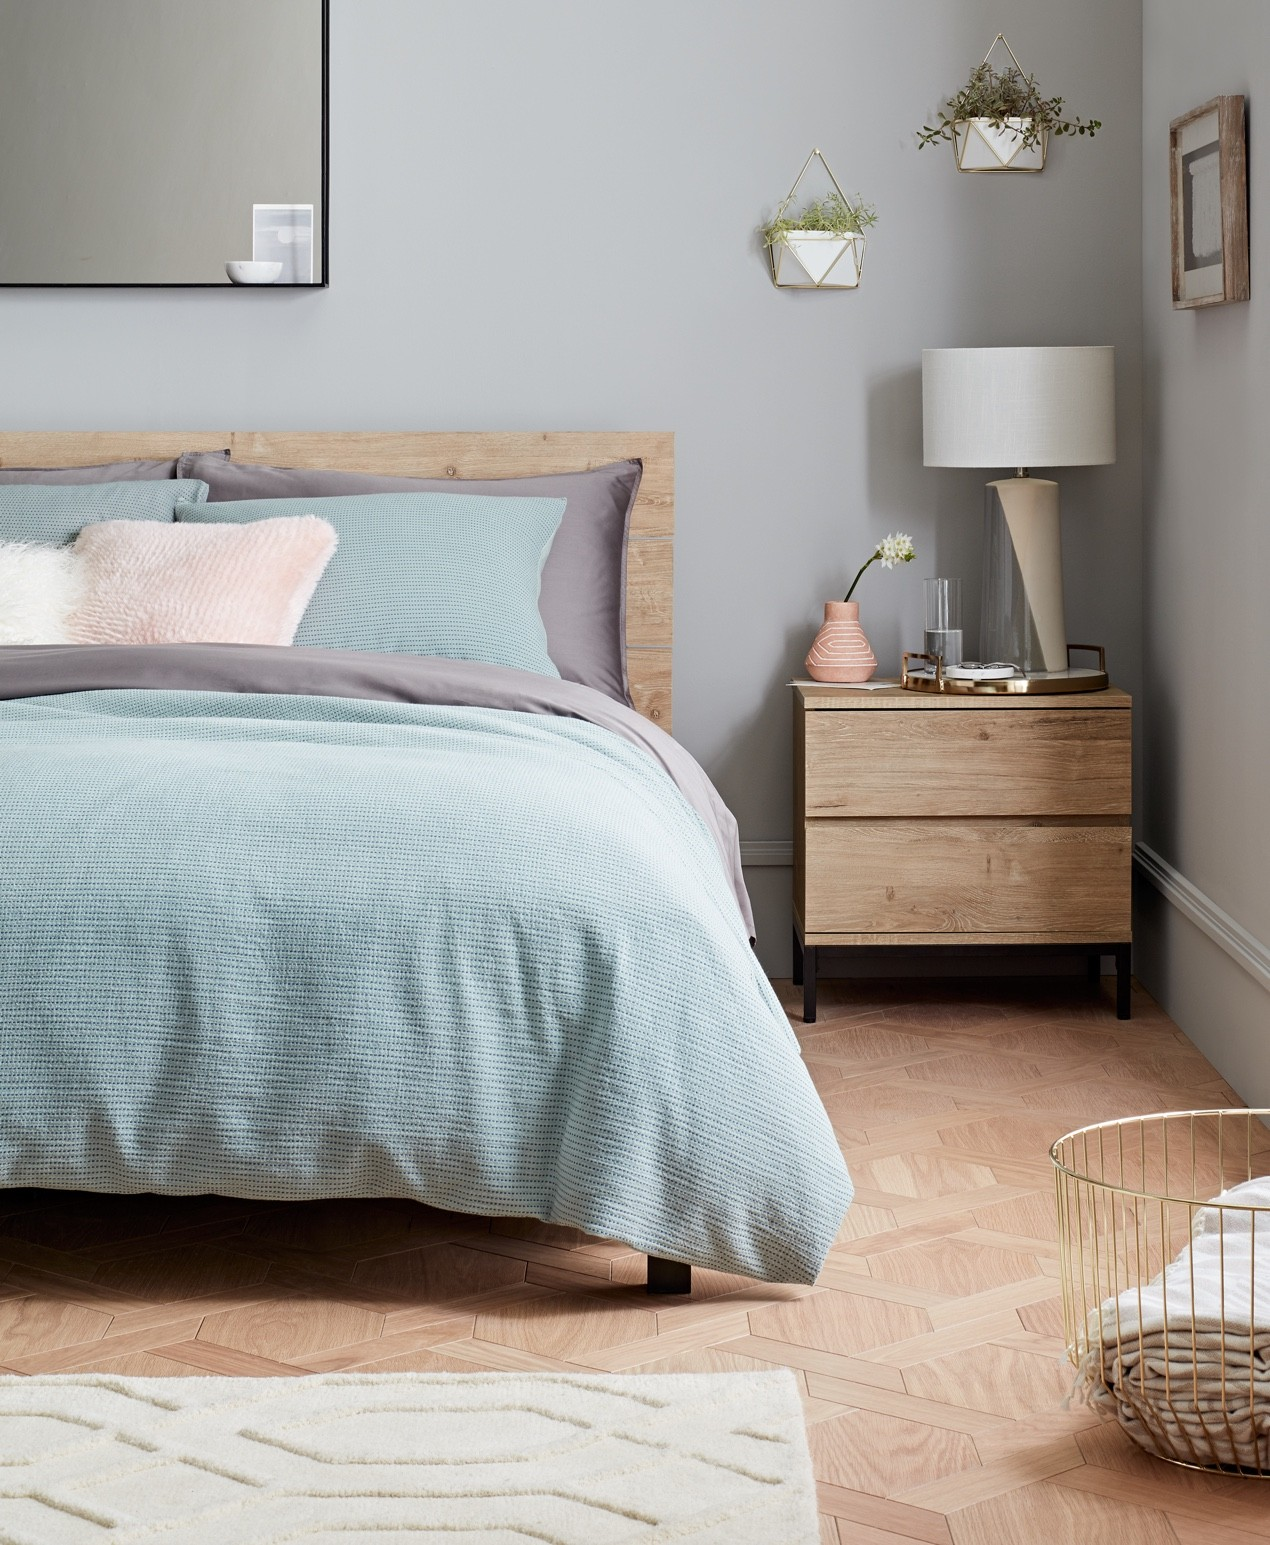 project 62 at target bedroom furniture and home decor